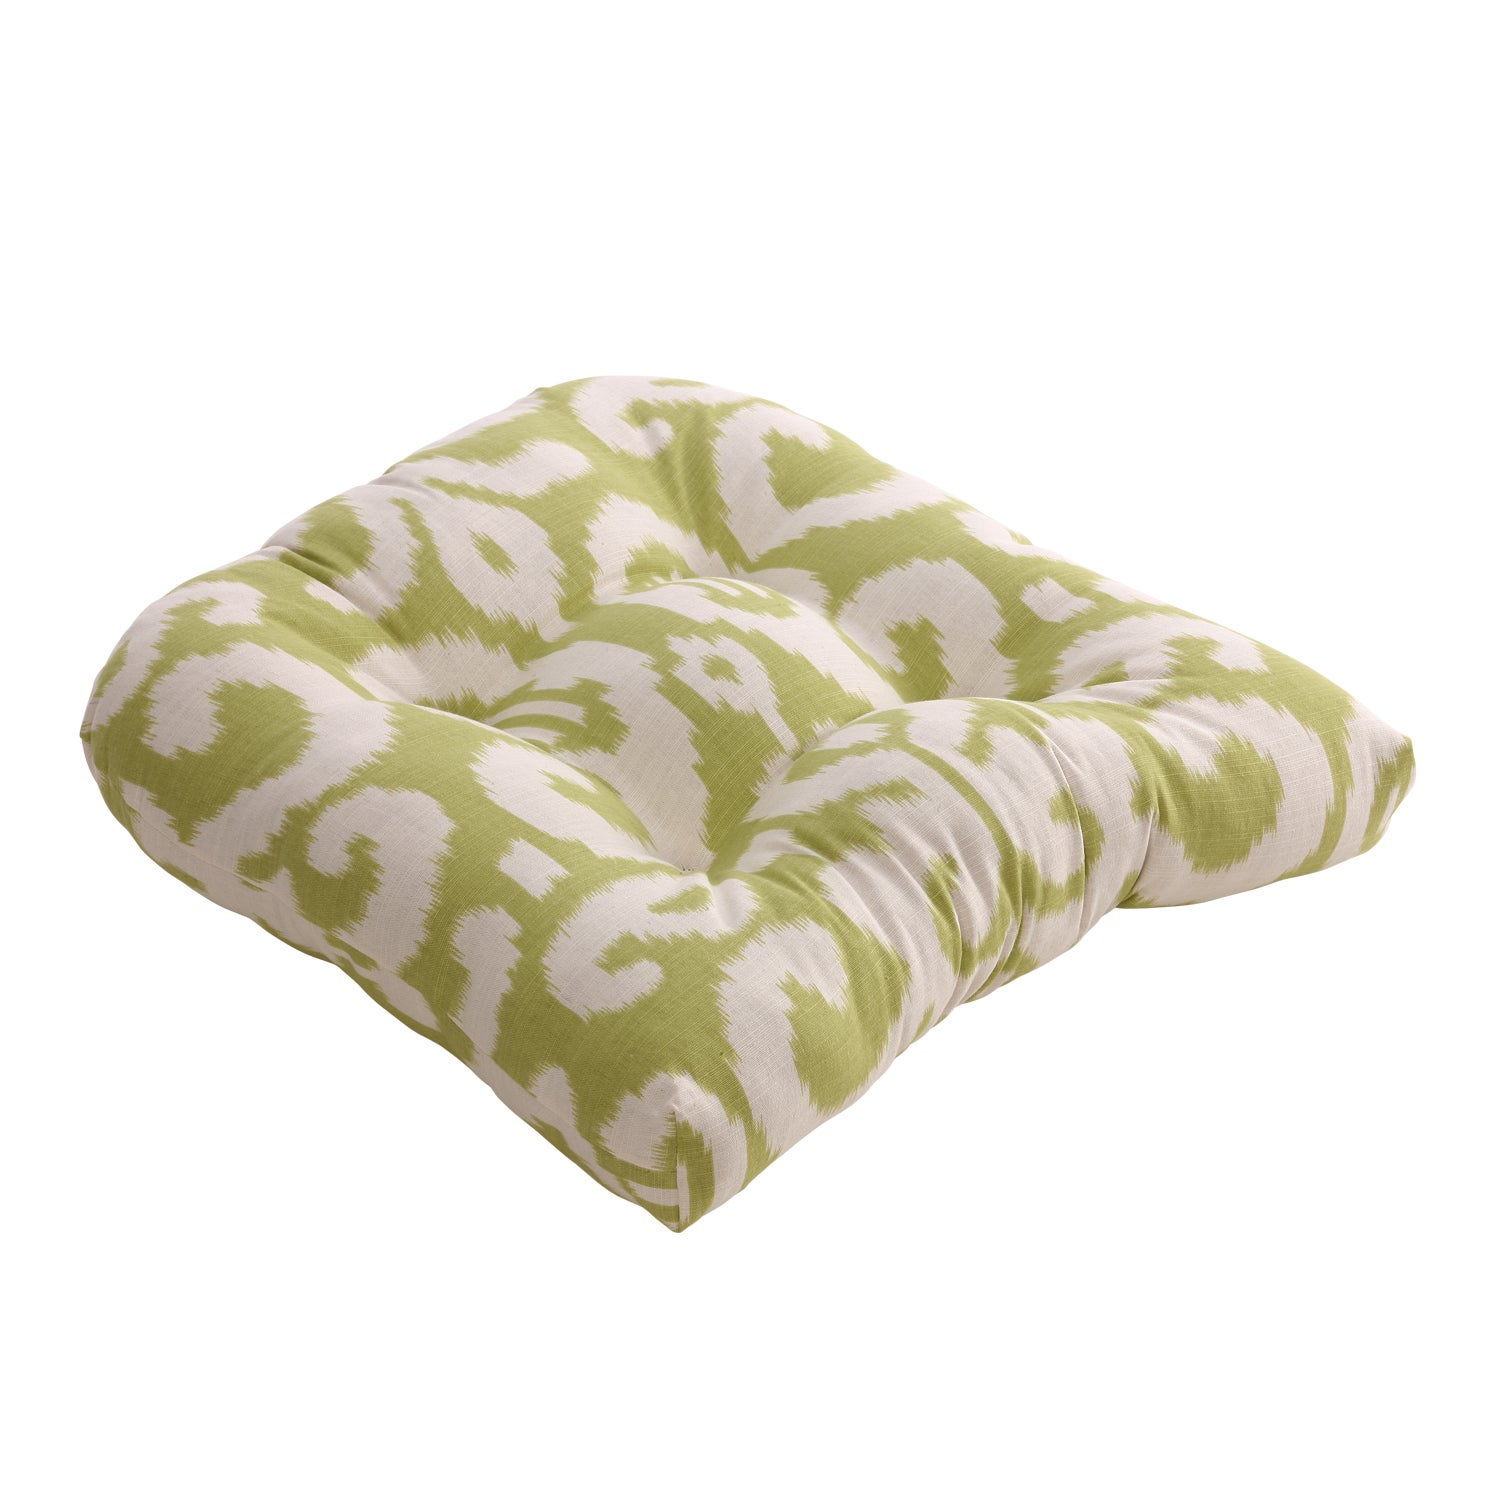 'Fergano' Lime Chair Cushion